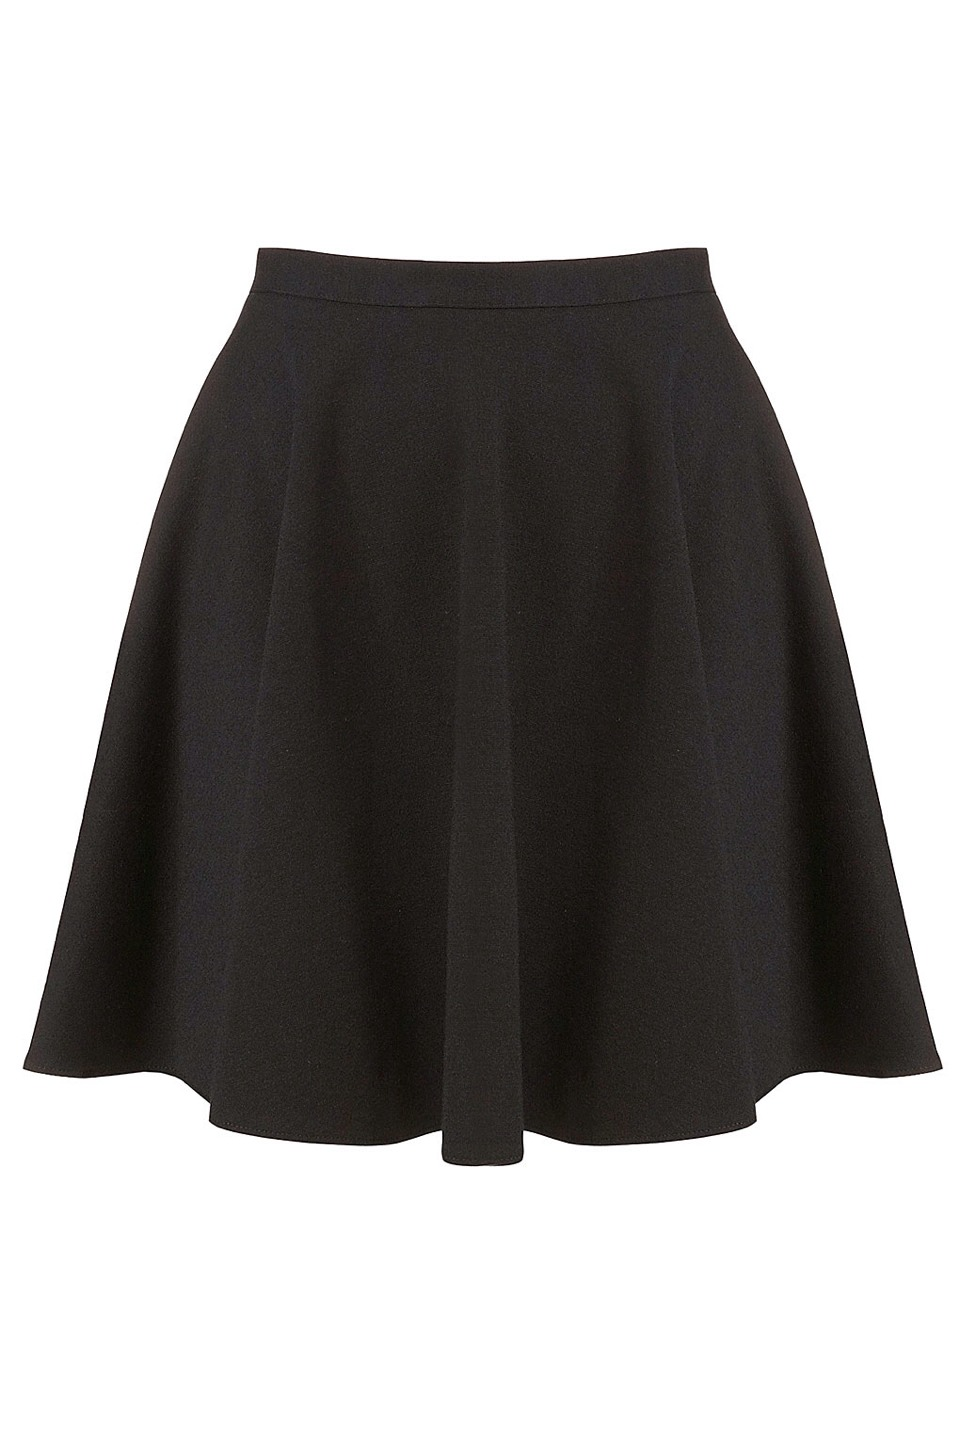 This skirt can be used overtop the Rock Roll Repeat shirt (shirt tucked in) or any shirt you think would look good in the same style! I have a grey, navy blue peter pan collar shirt which looks great, as well.